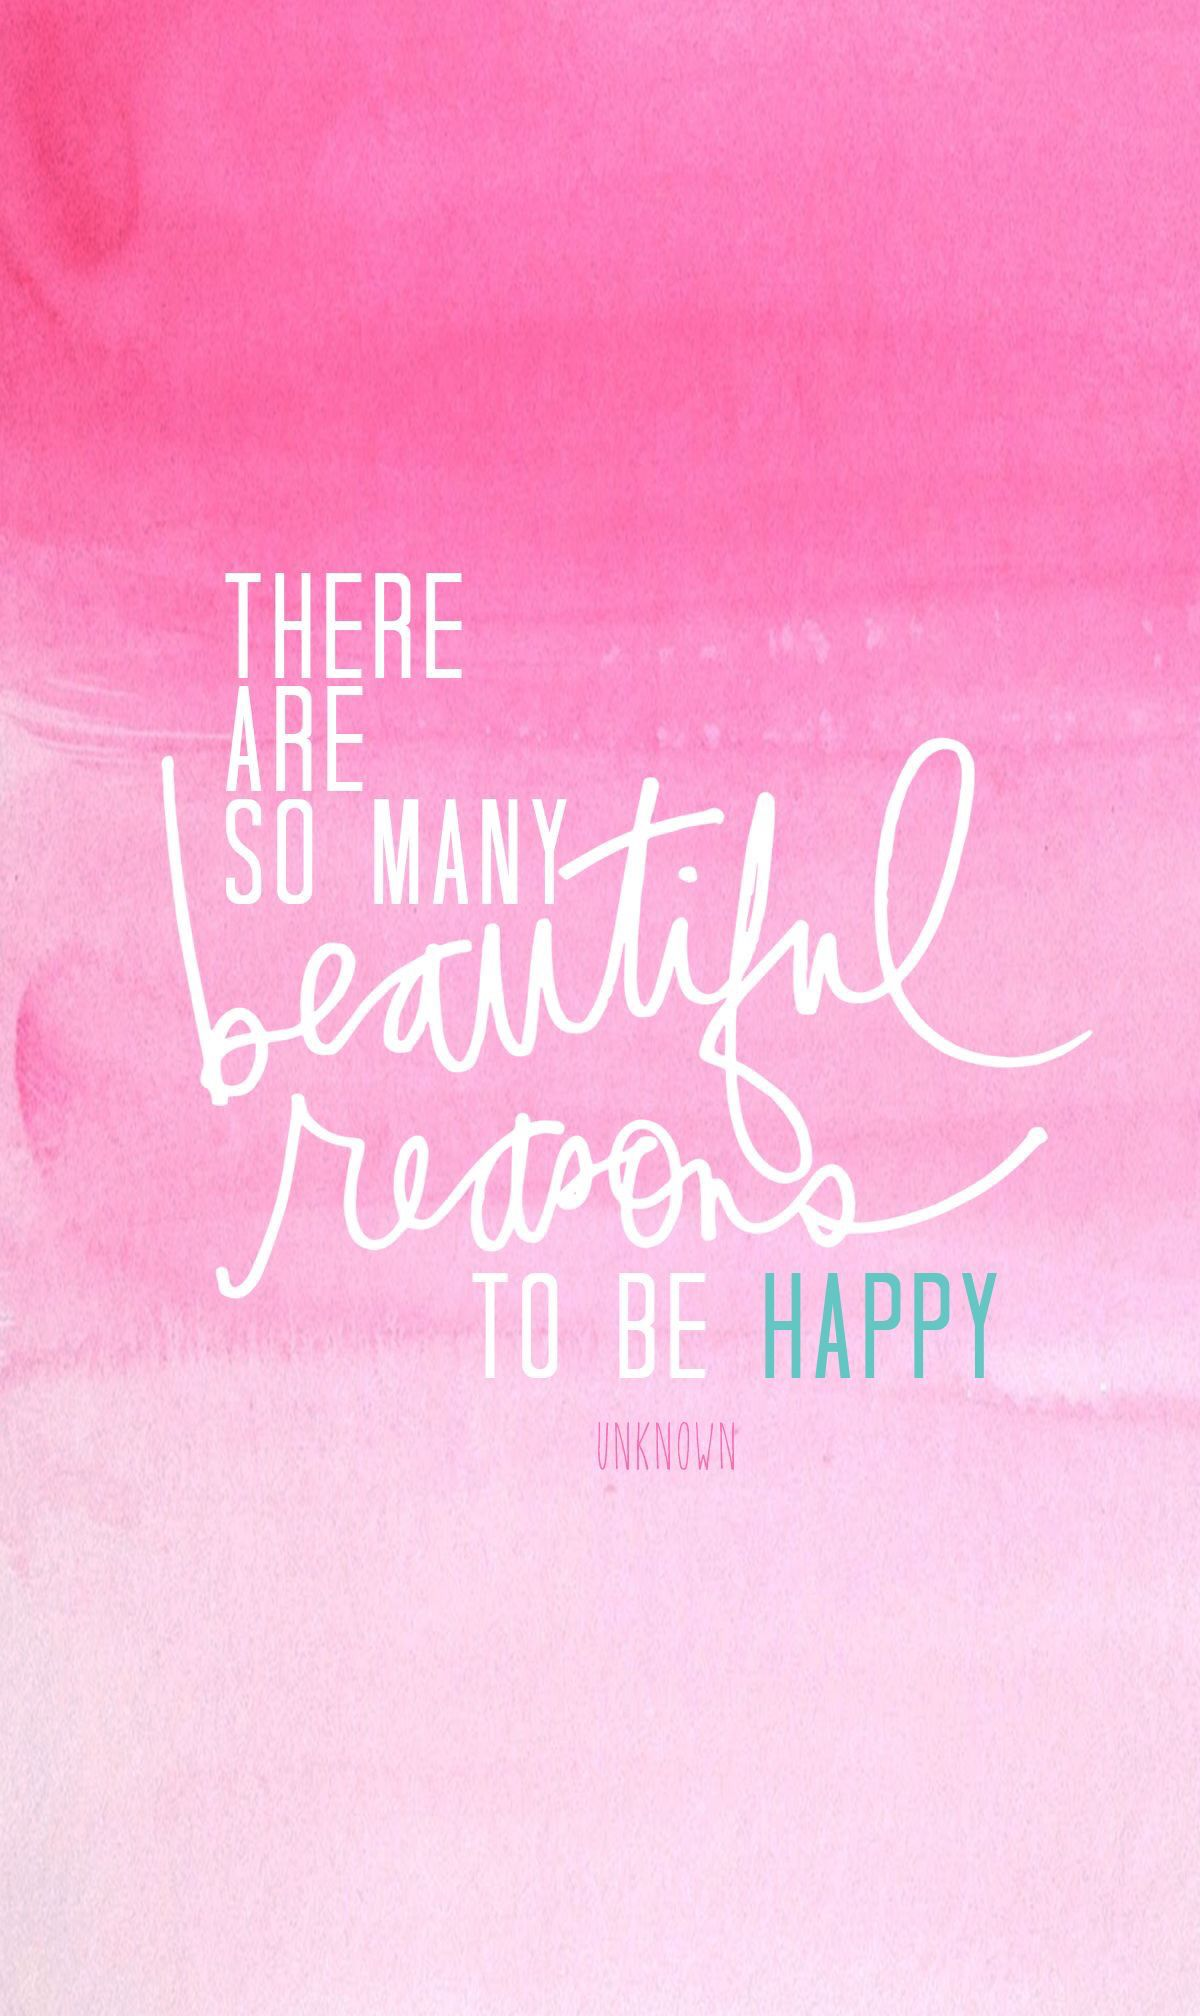 Pin by ChaneJasmineUsami on WaLLpaPerS Reasons to be